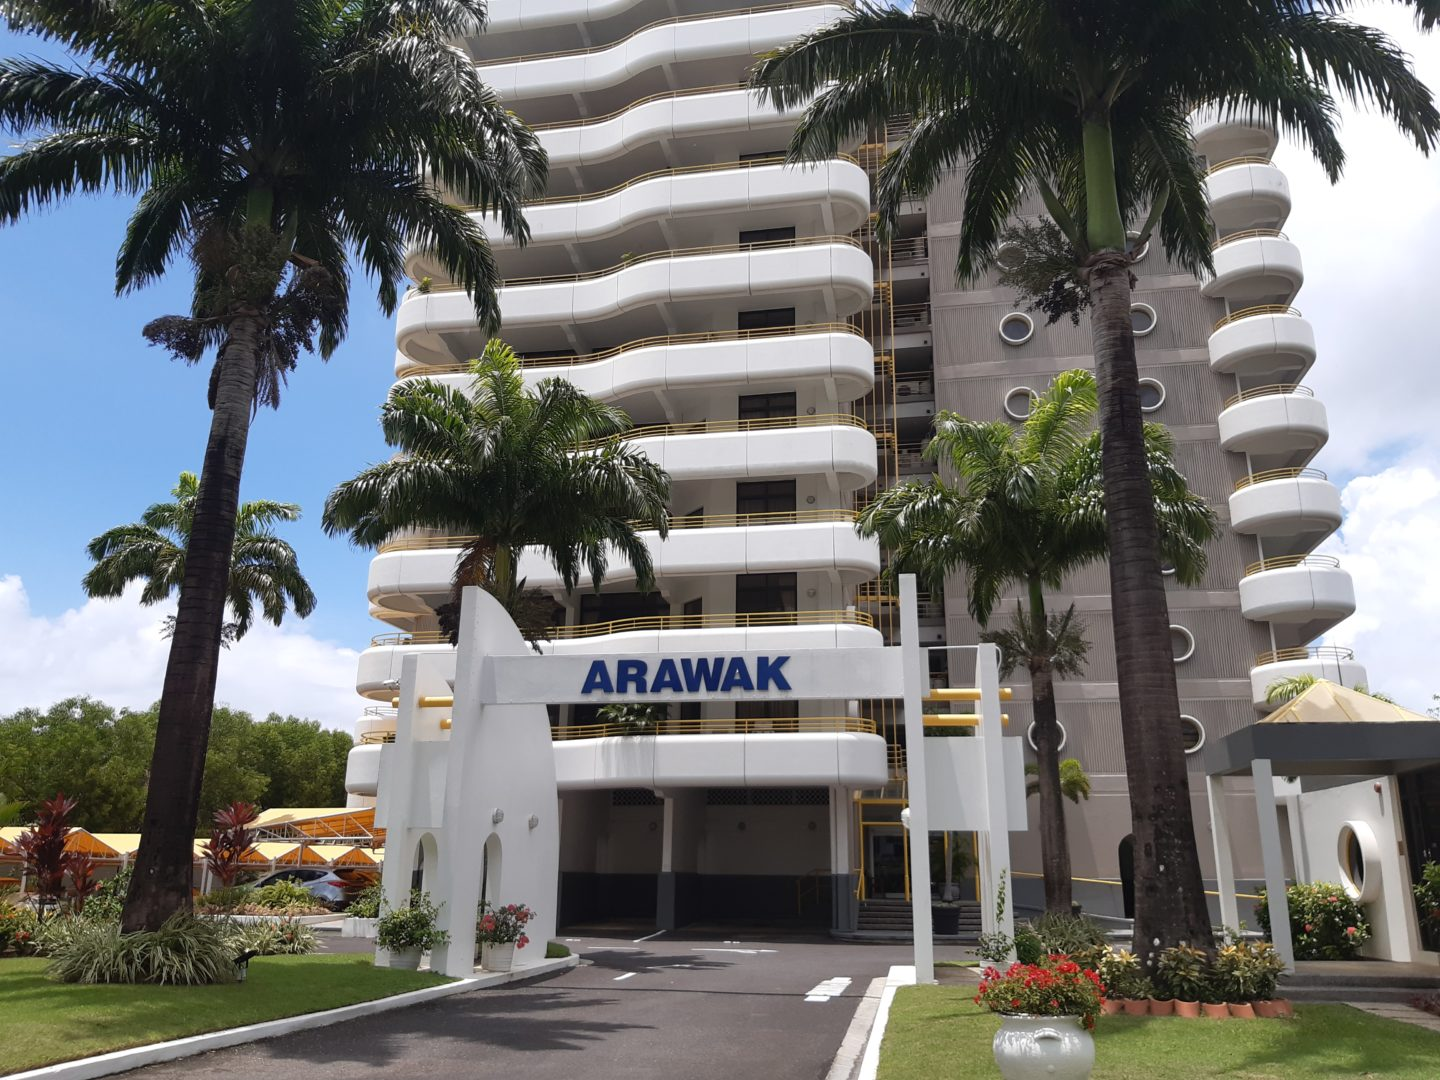 Arawak TOWERS apt. for SALE – Home / Investment